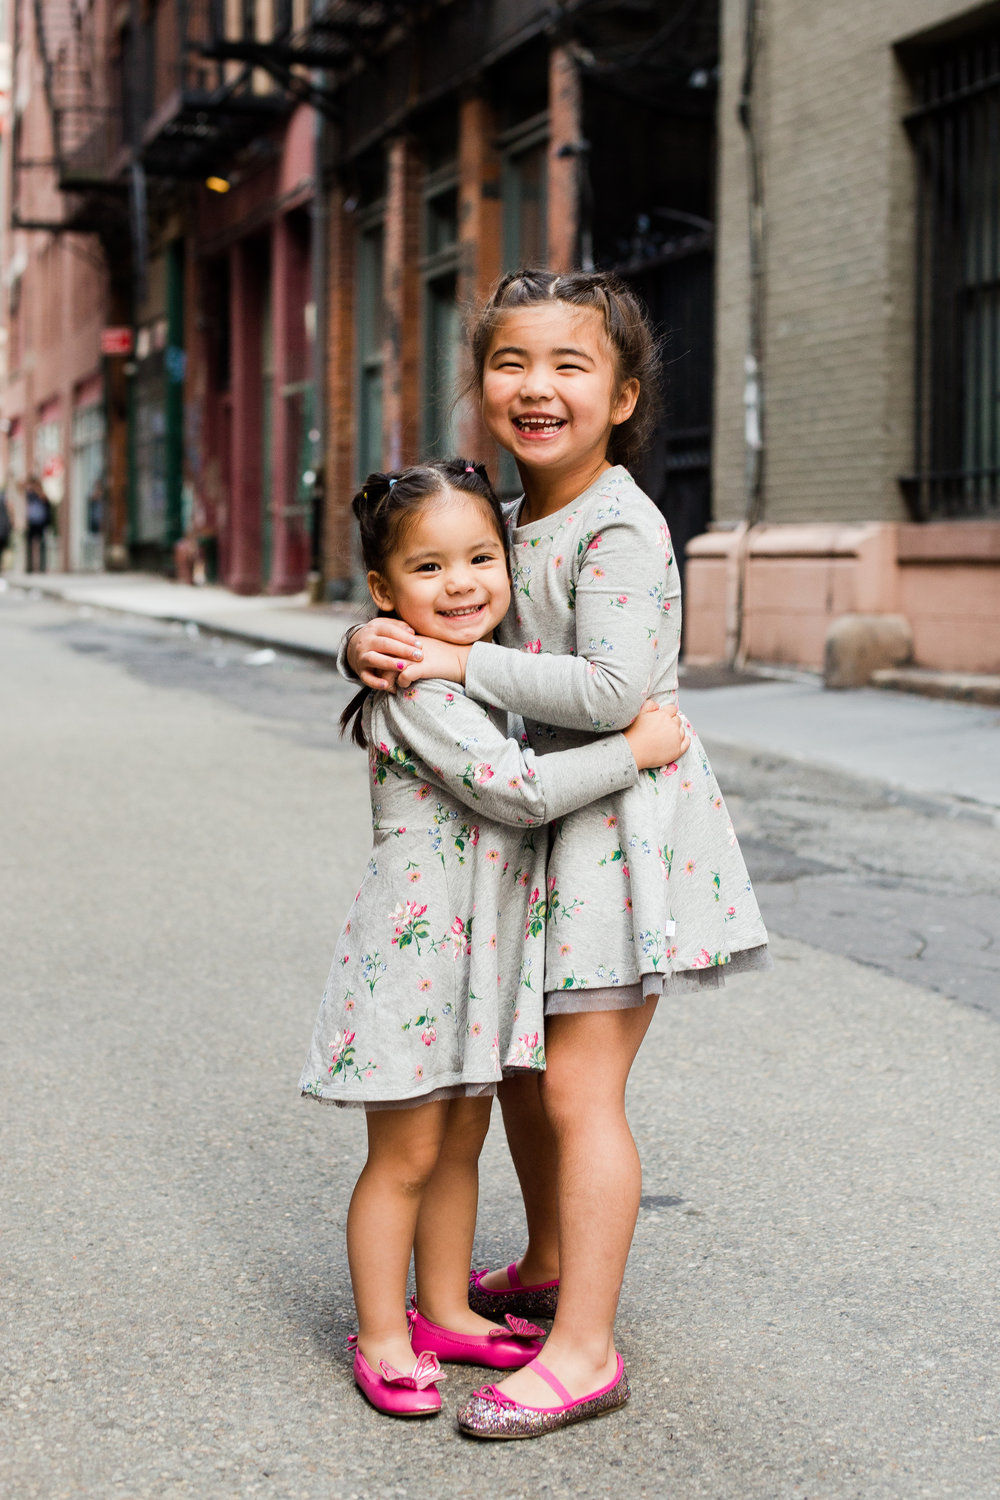 lissiephoto_loomis_nyc_family_photography57.JPG